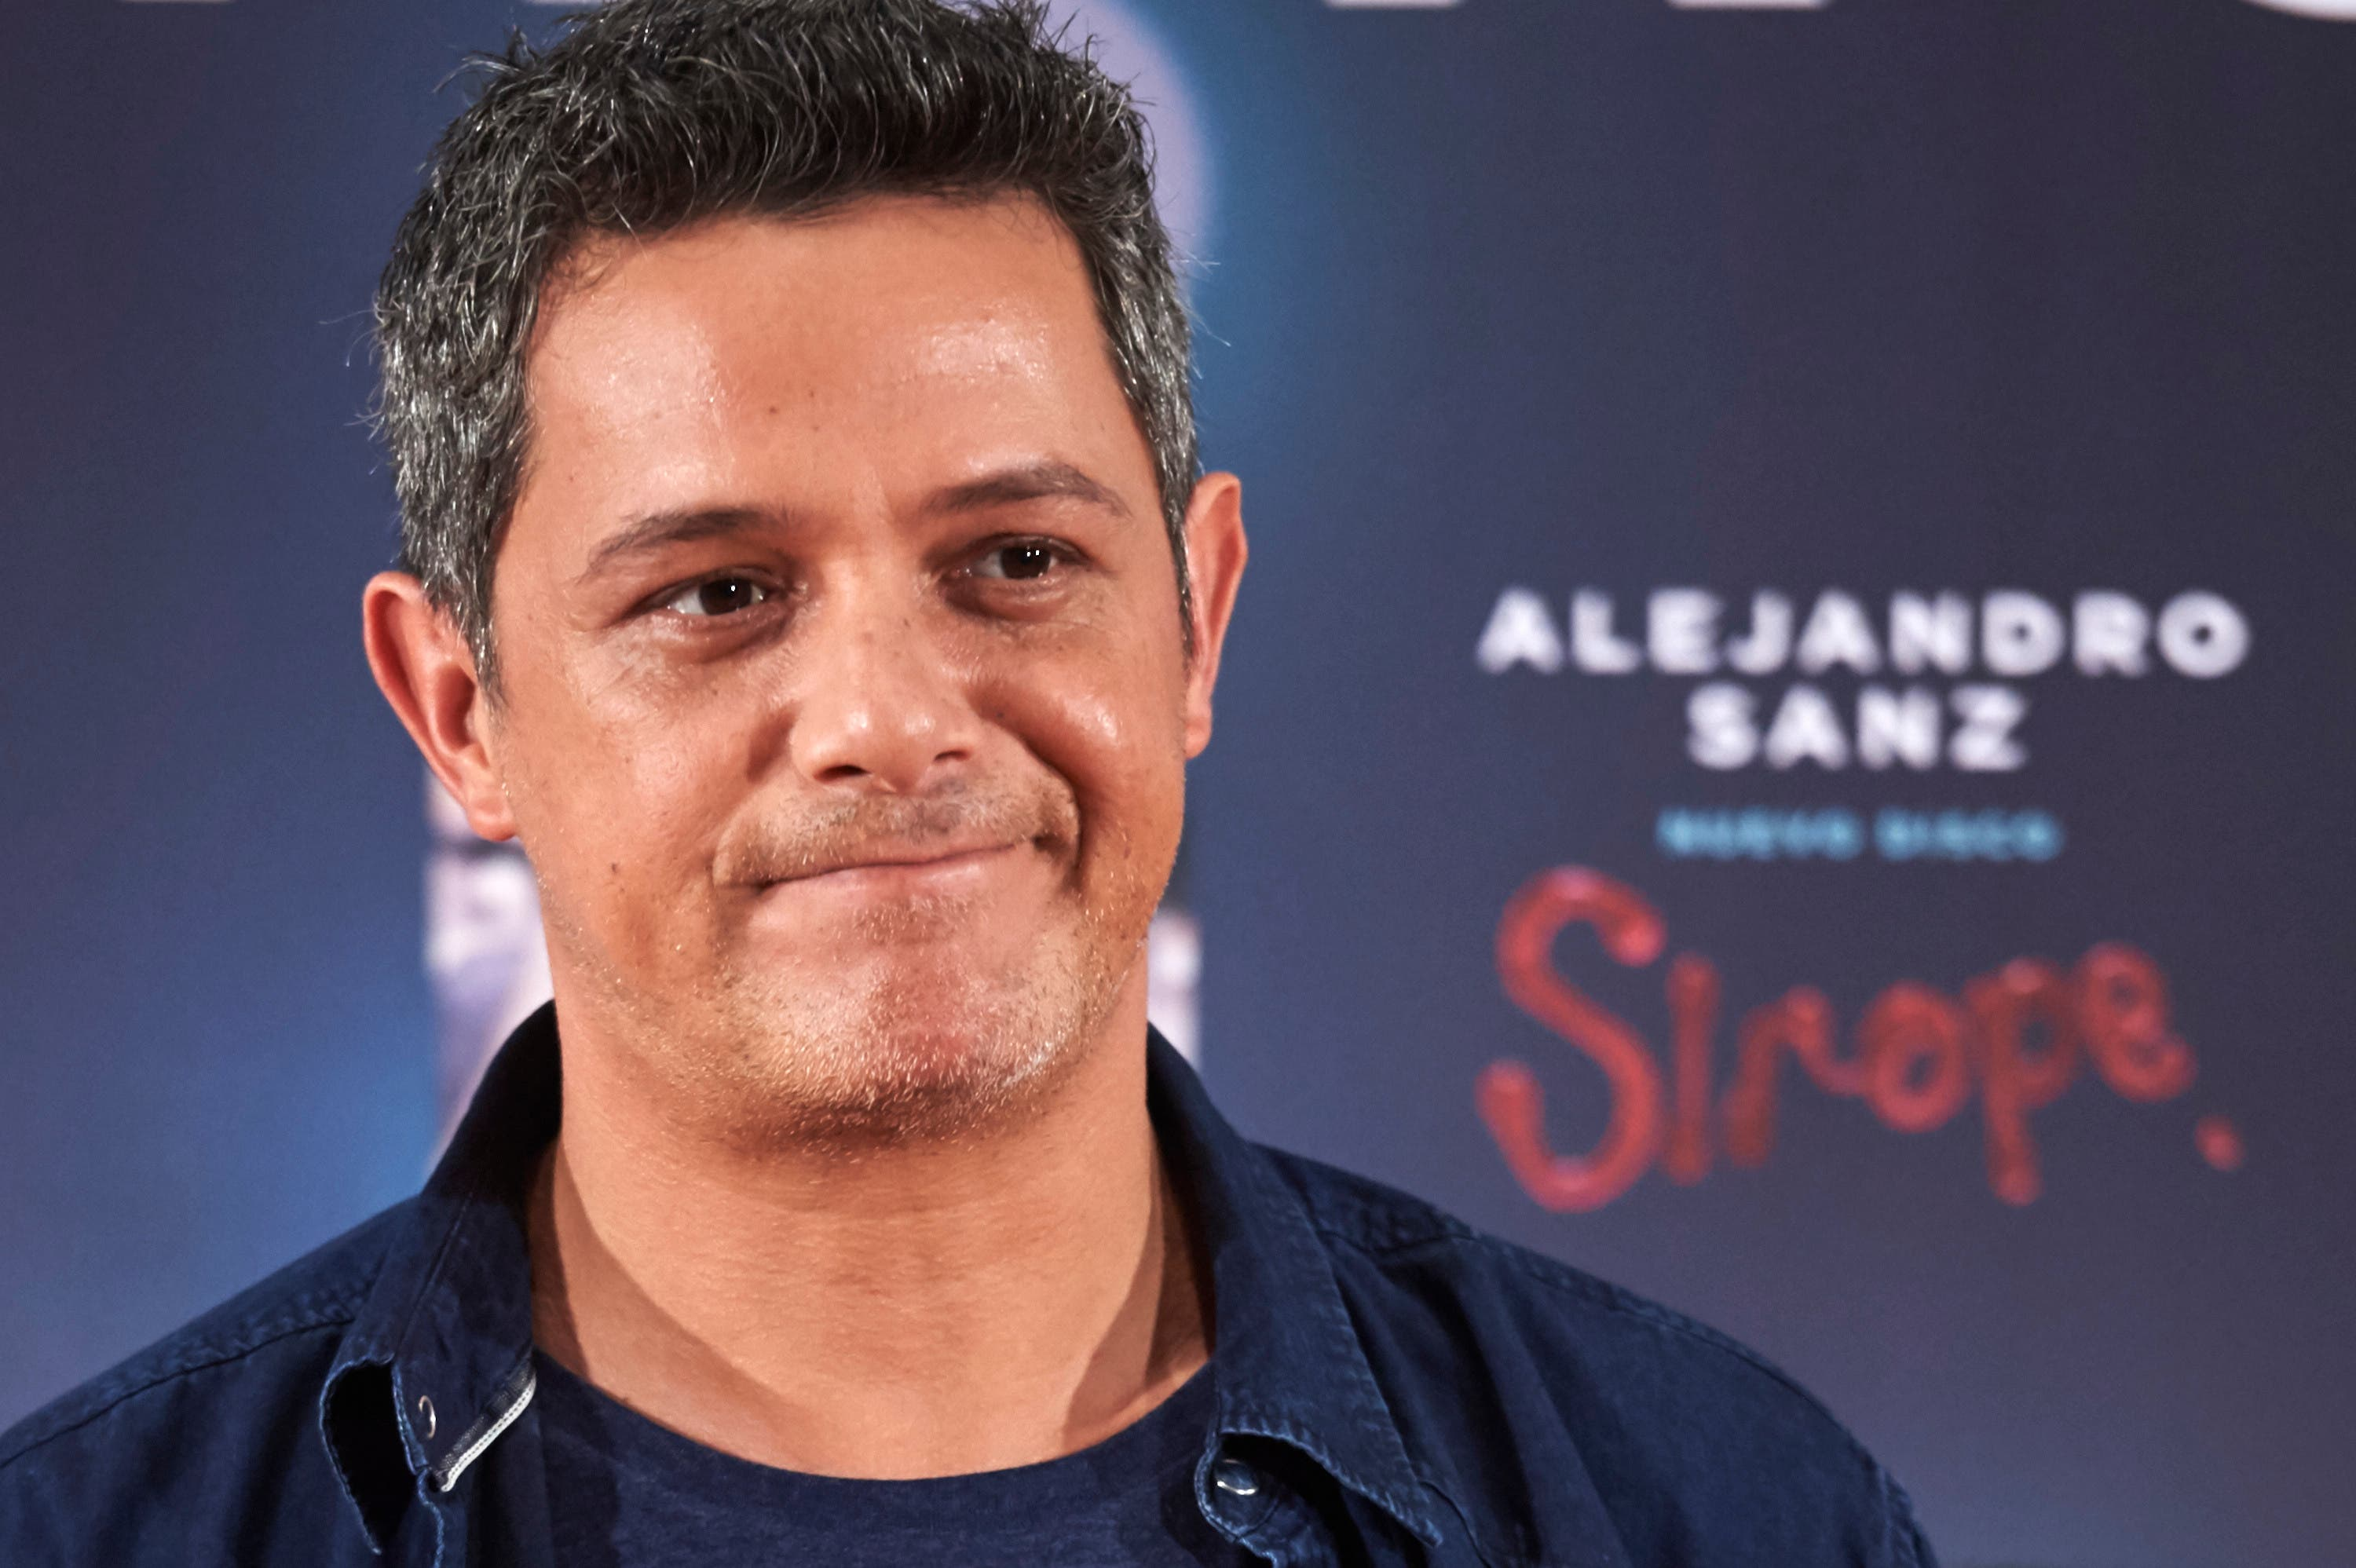 """MADRID, SPAIN - MAY 04:  Spanish singer Alejandro Sanz presents his new album """"Sirope"""" at the Reina Sofia Museum on May 4, 2015 in Madrid, Spain.  (Photo by Carlos Alvarez/Getty Images)"""